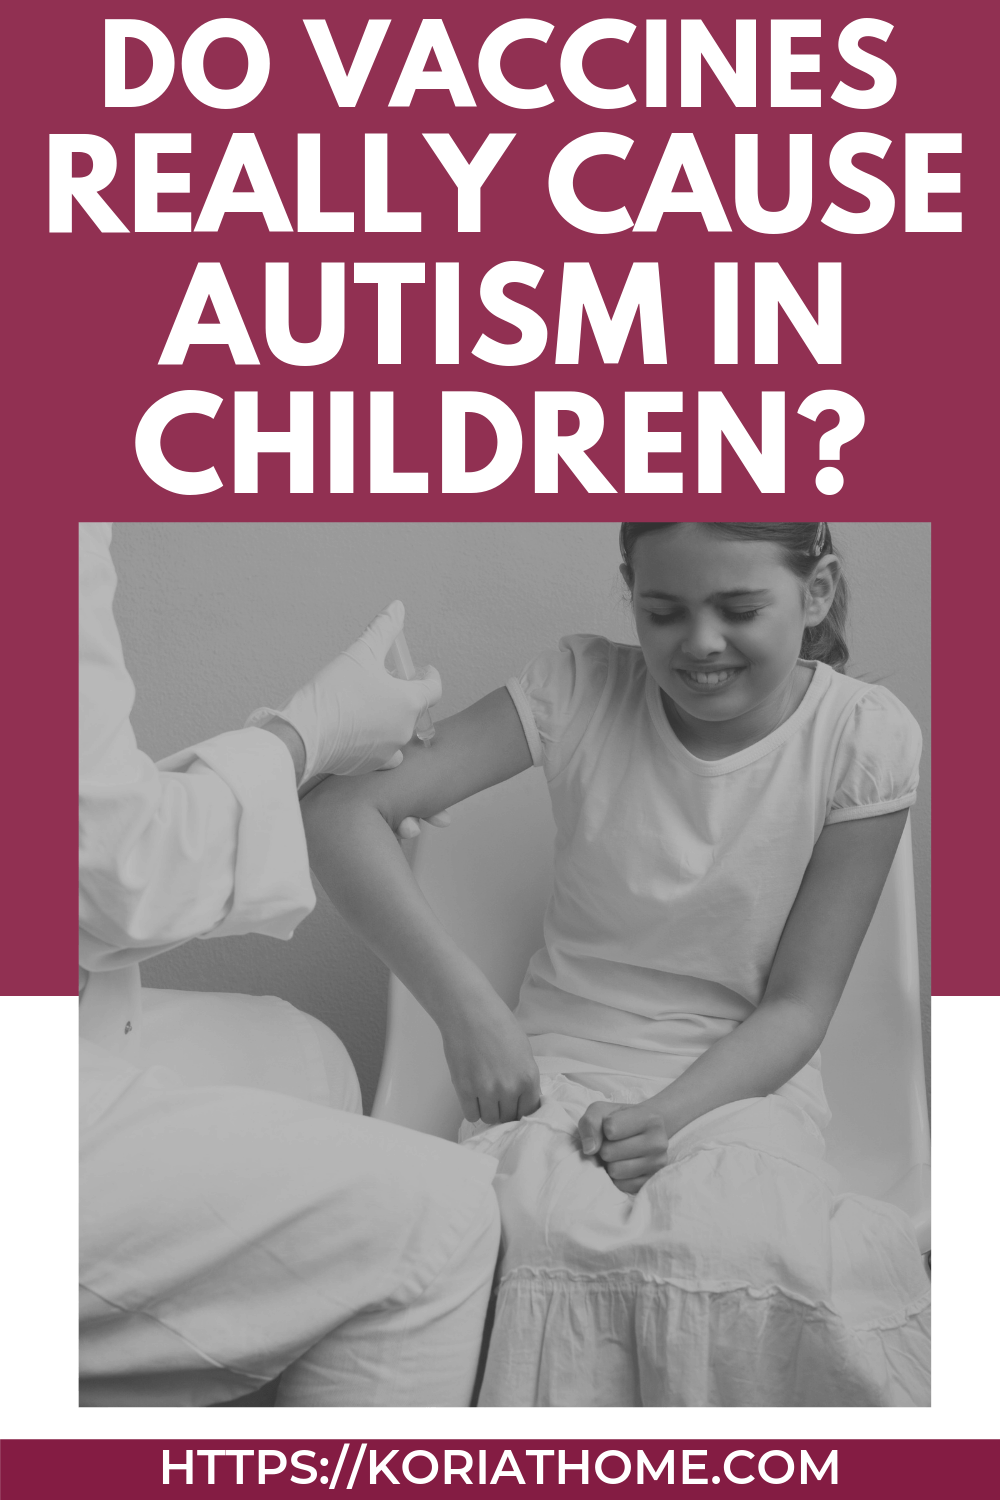 Asking the question about vaccines and autism